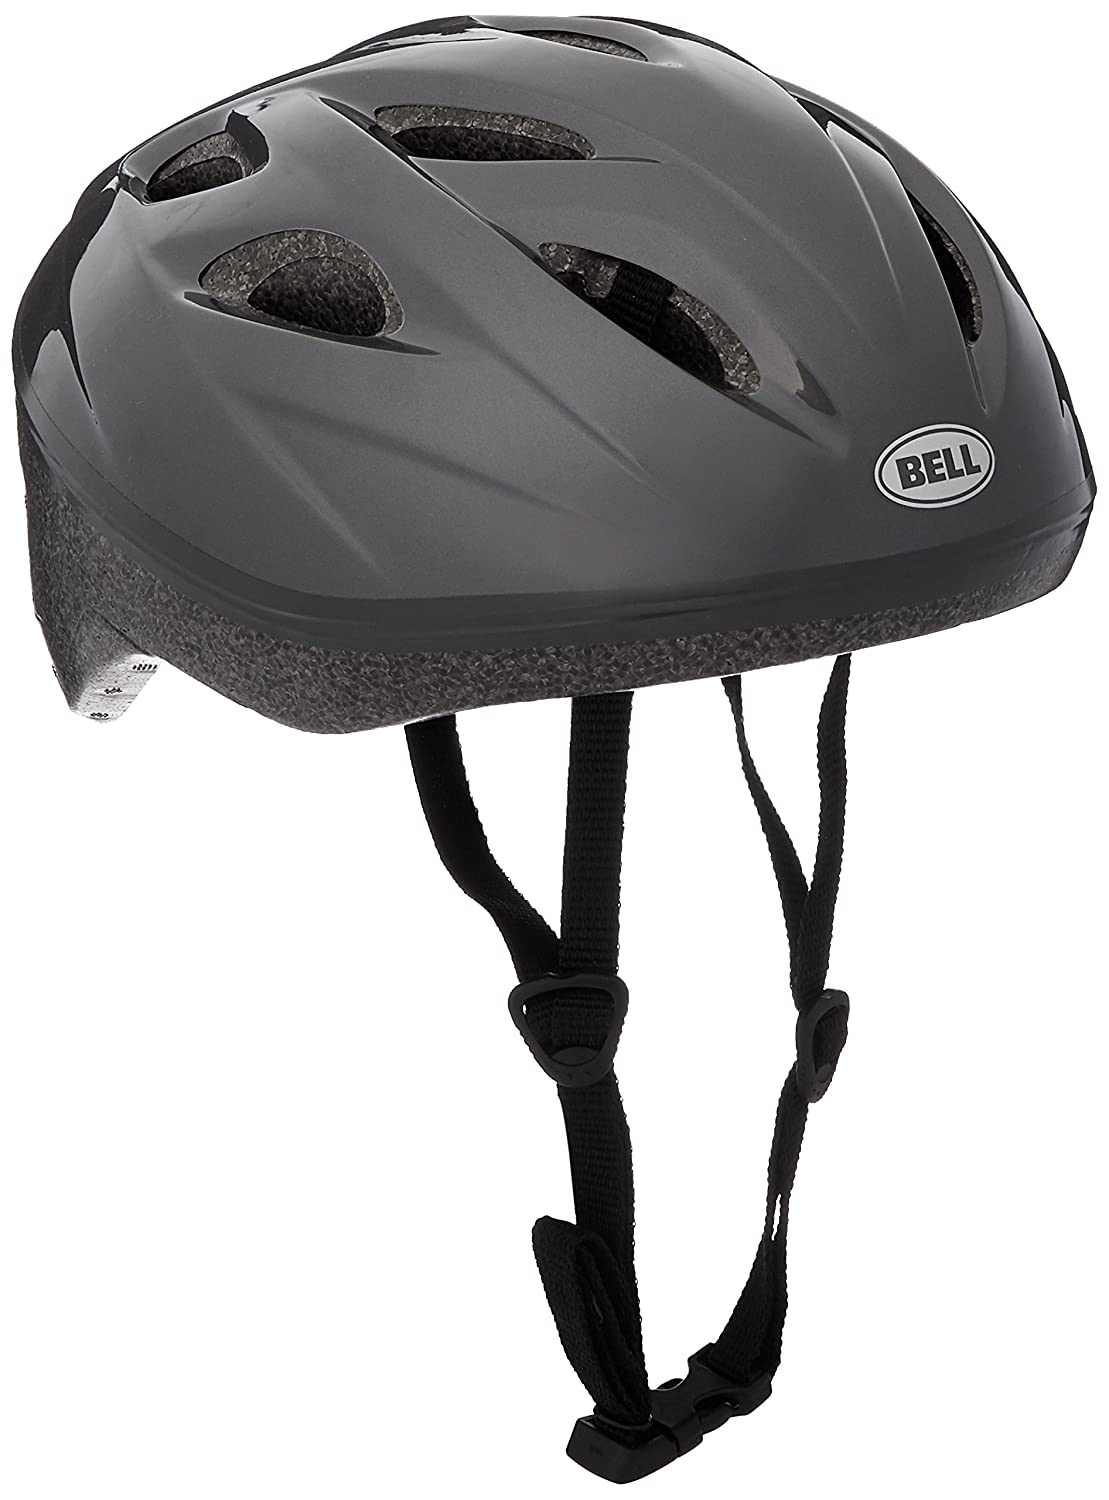 Bell Adult Reflex Helmet, Solid Light Titanium 7063301